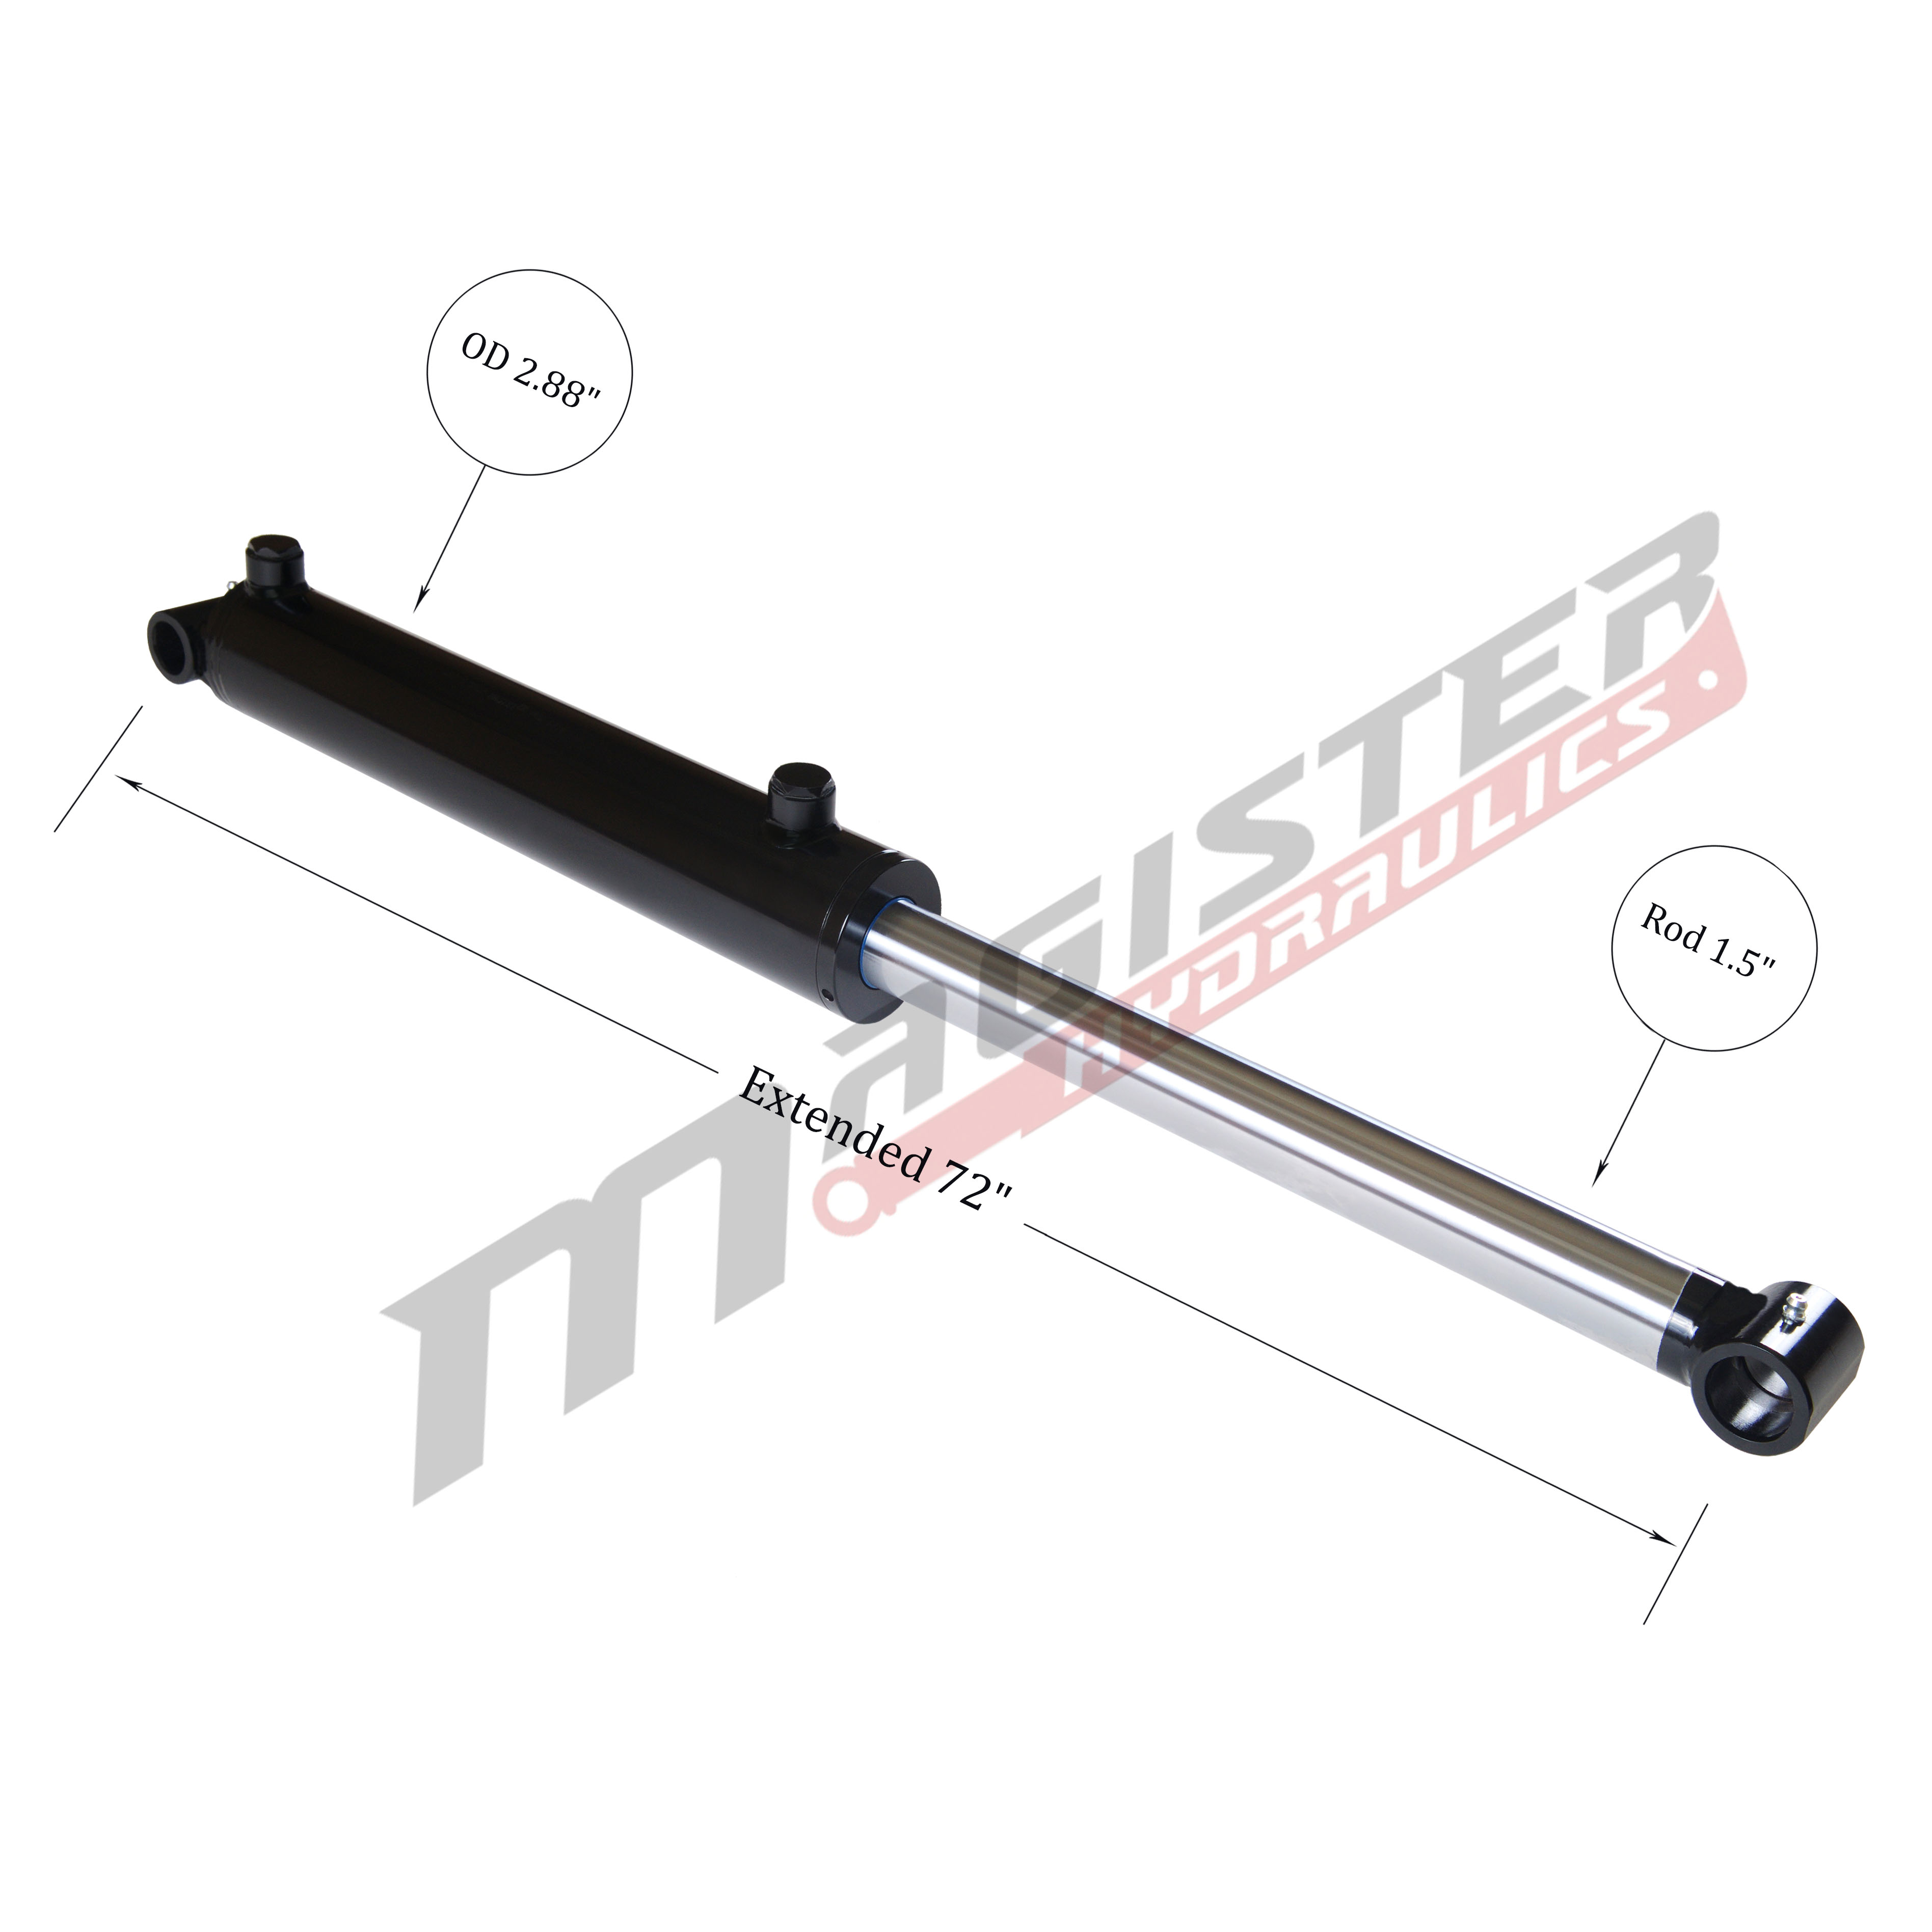 2.5 bore x 32 stroke hydraulic cylinder, welded cross tube double acting cylinder | Magister Hydraulics